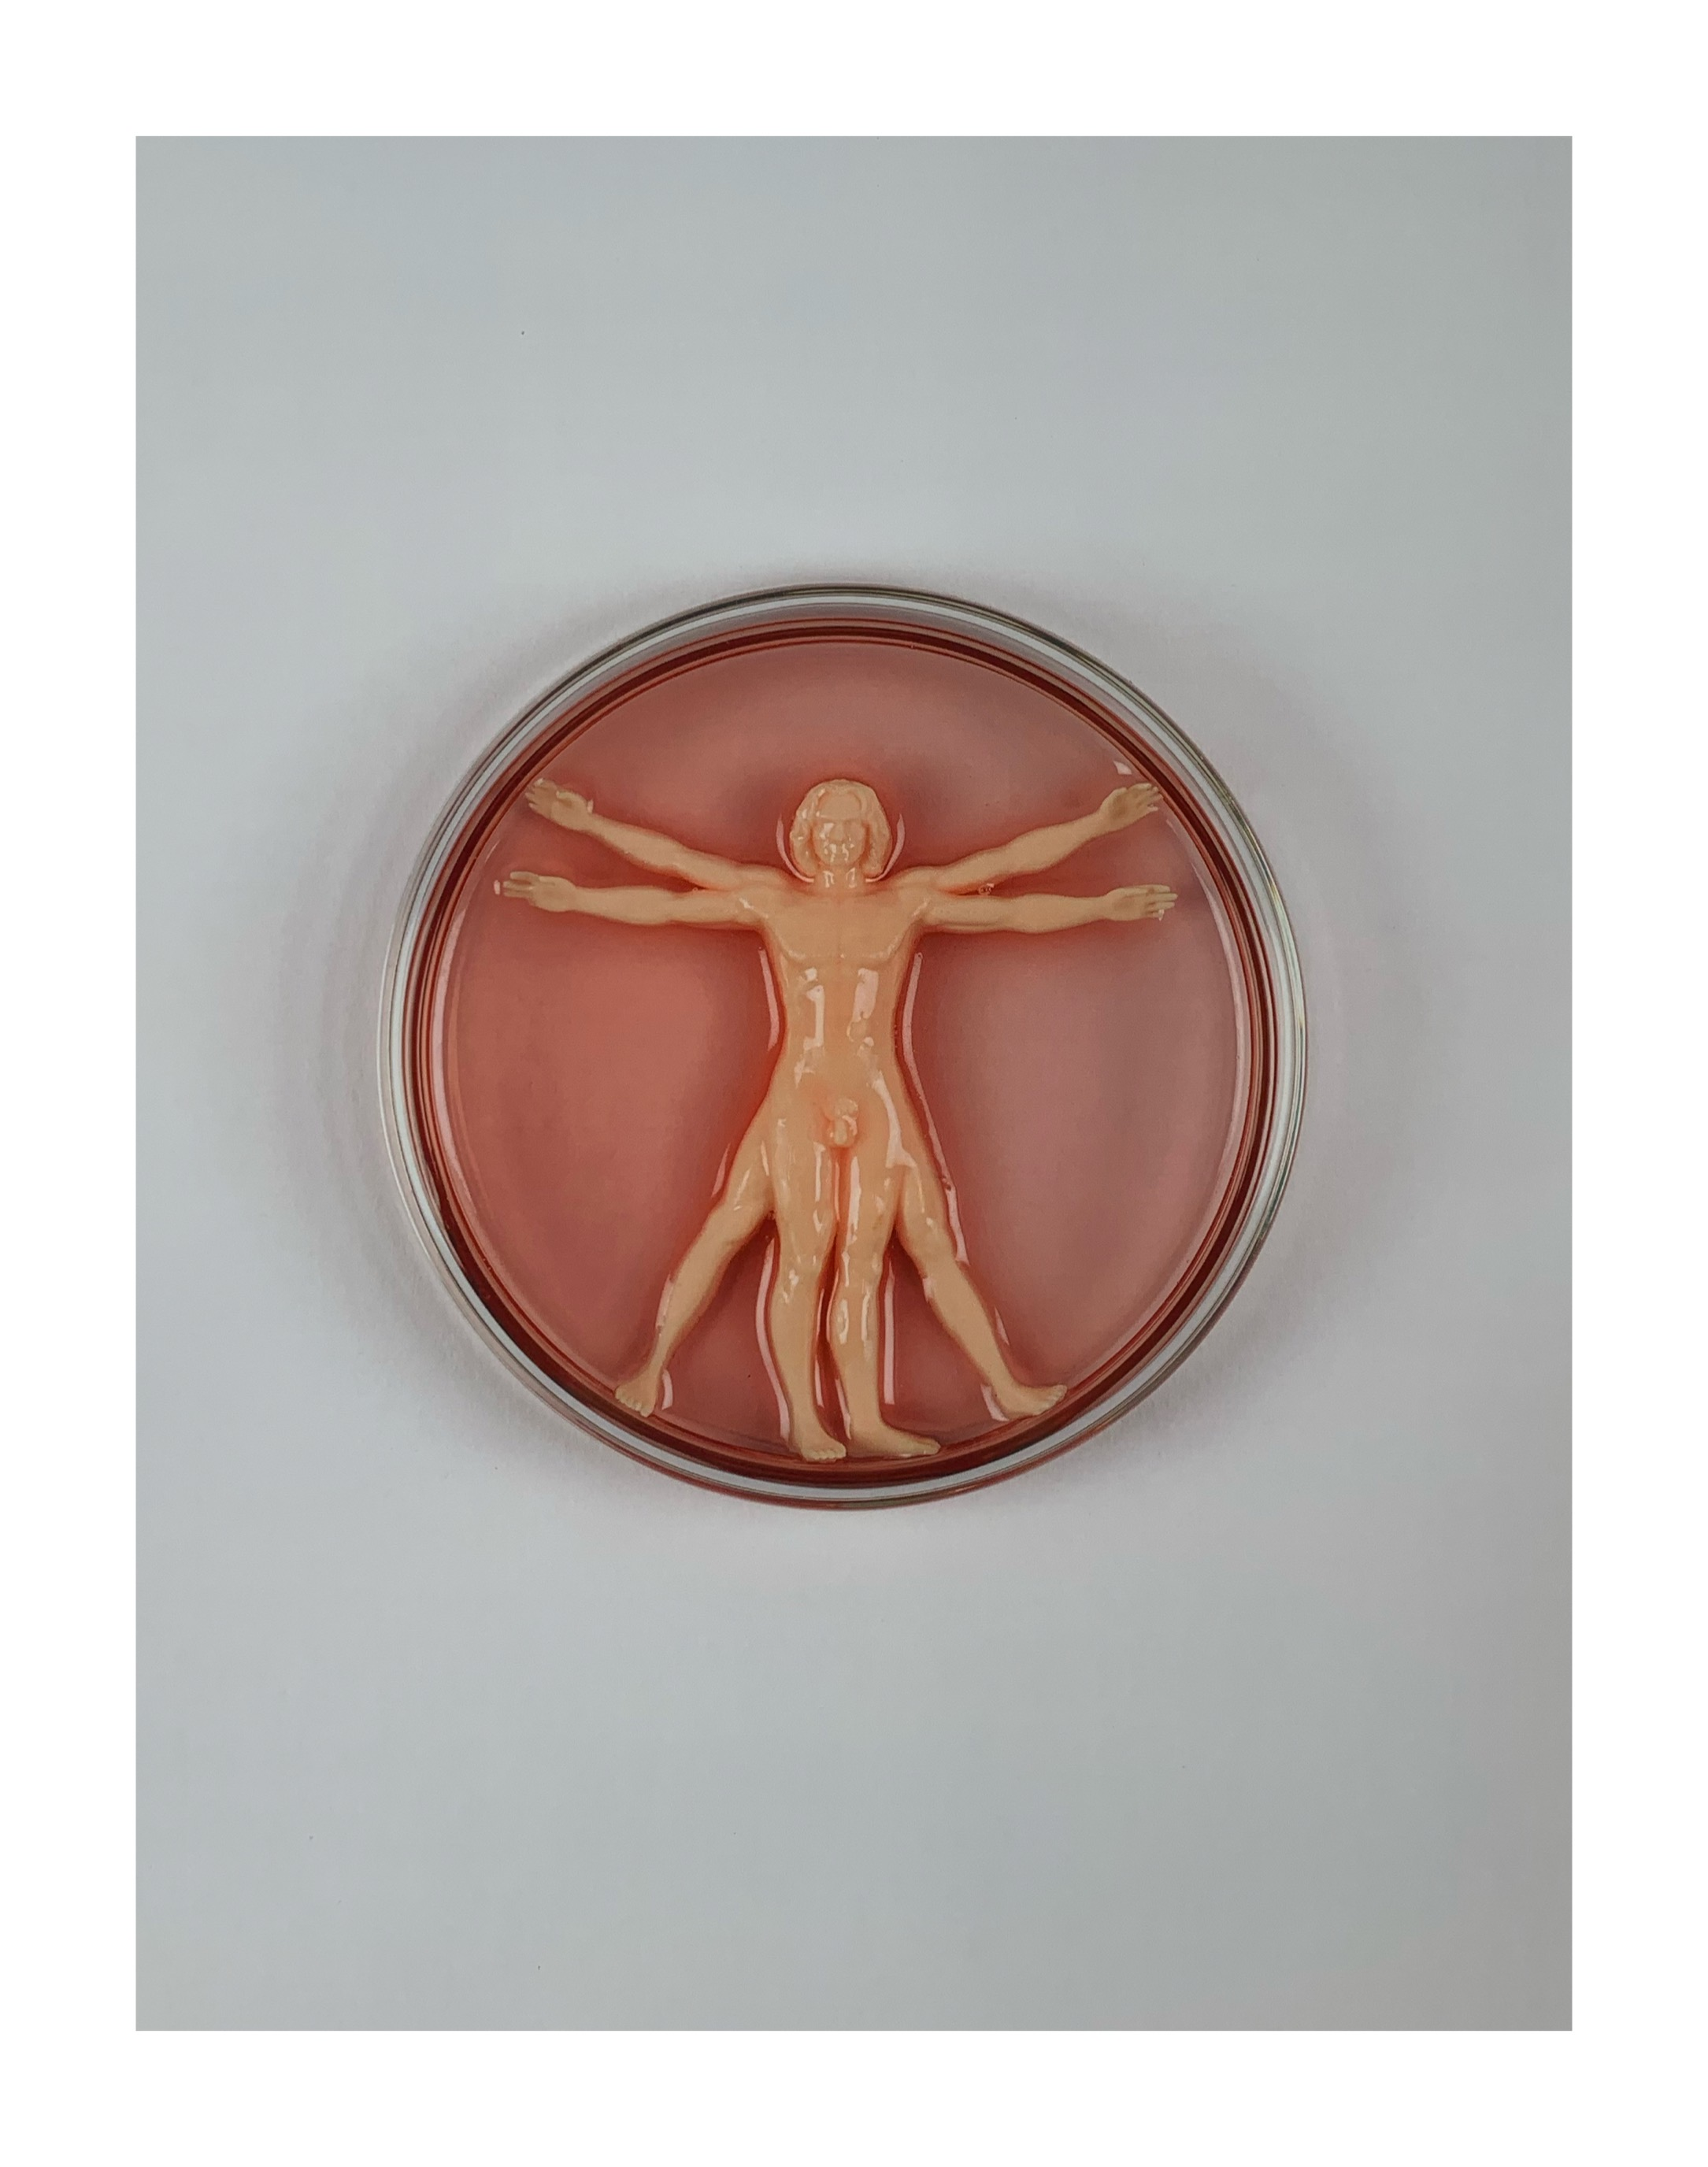 IMBUE 'VITRUVIAN MAN-MADE' - 2020 - Image 2 of 2